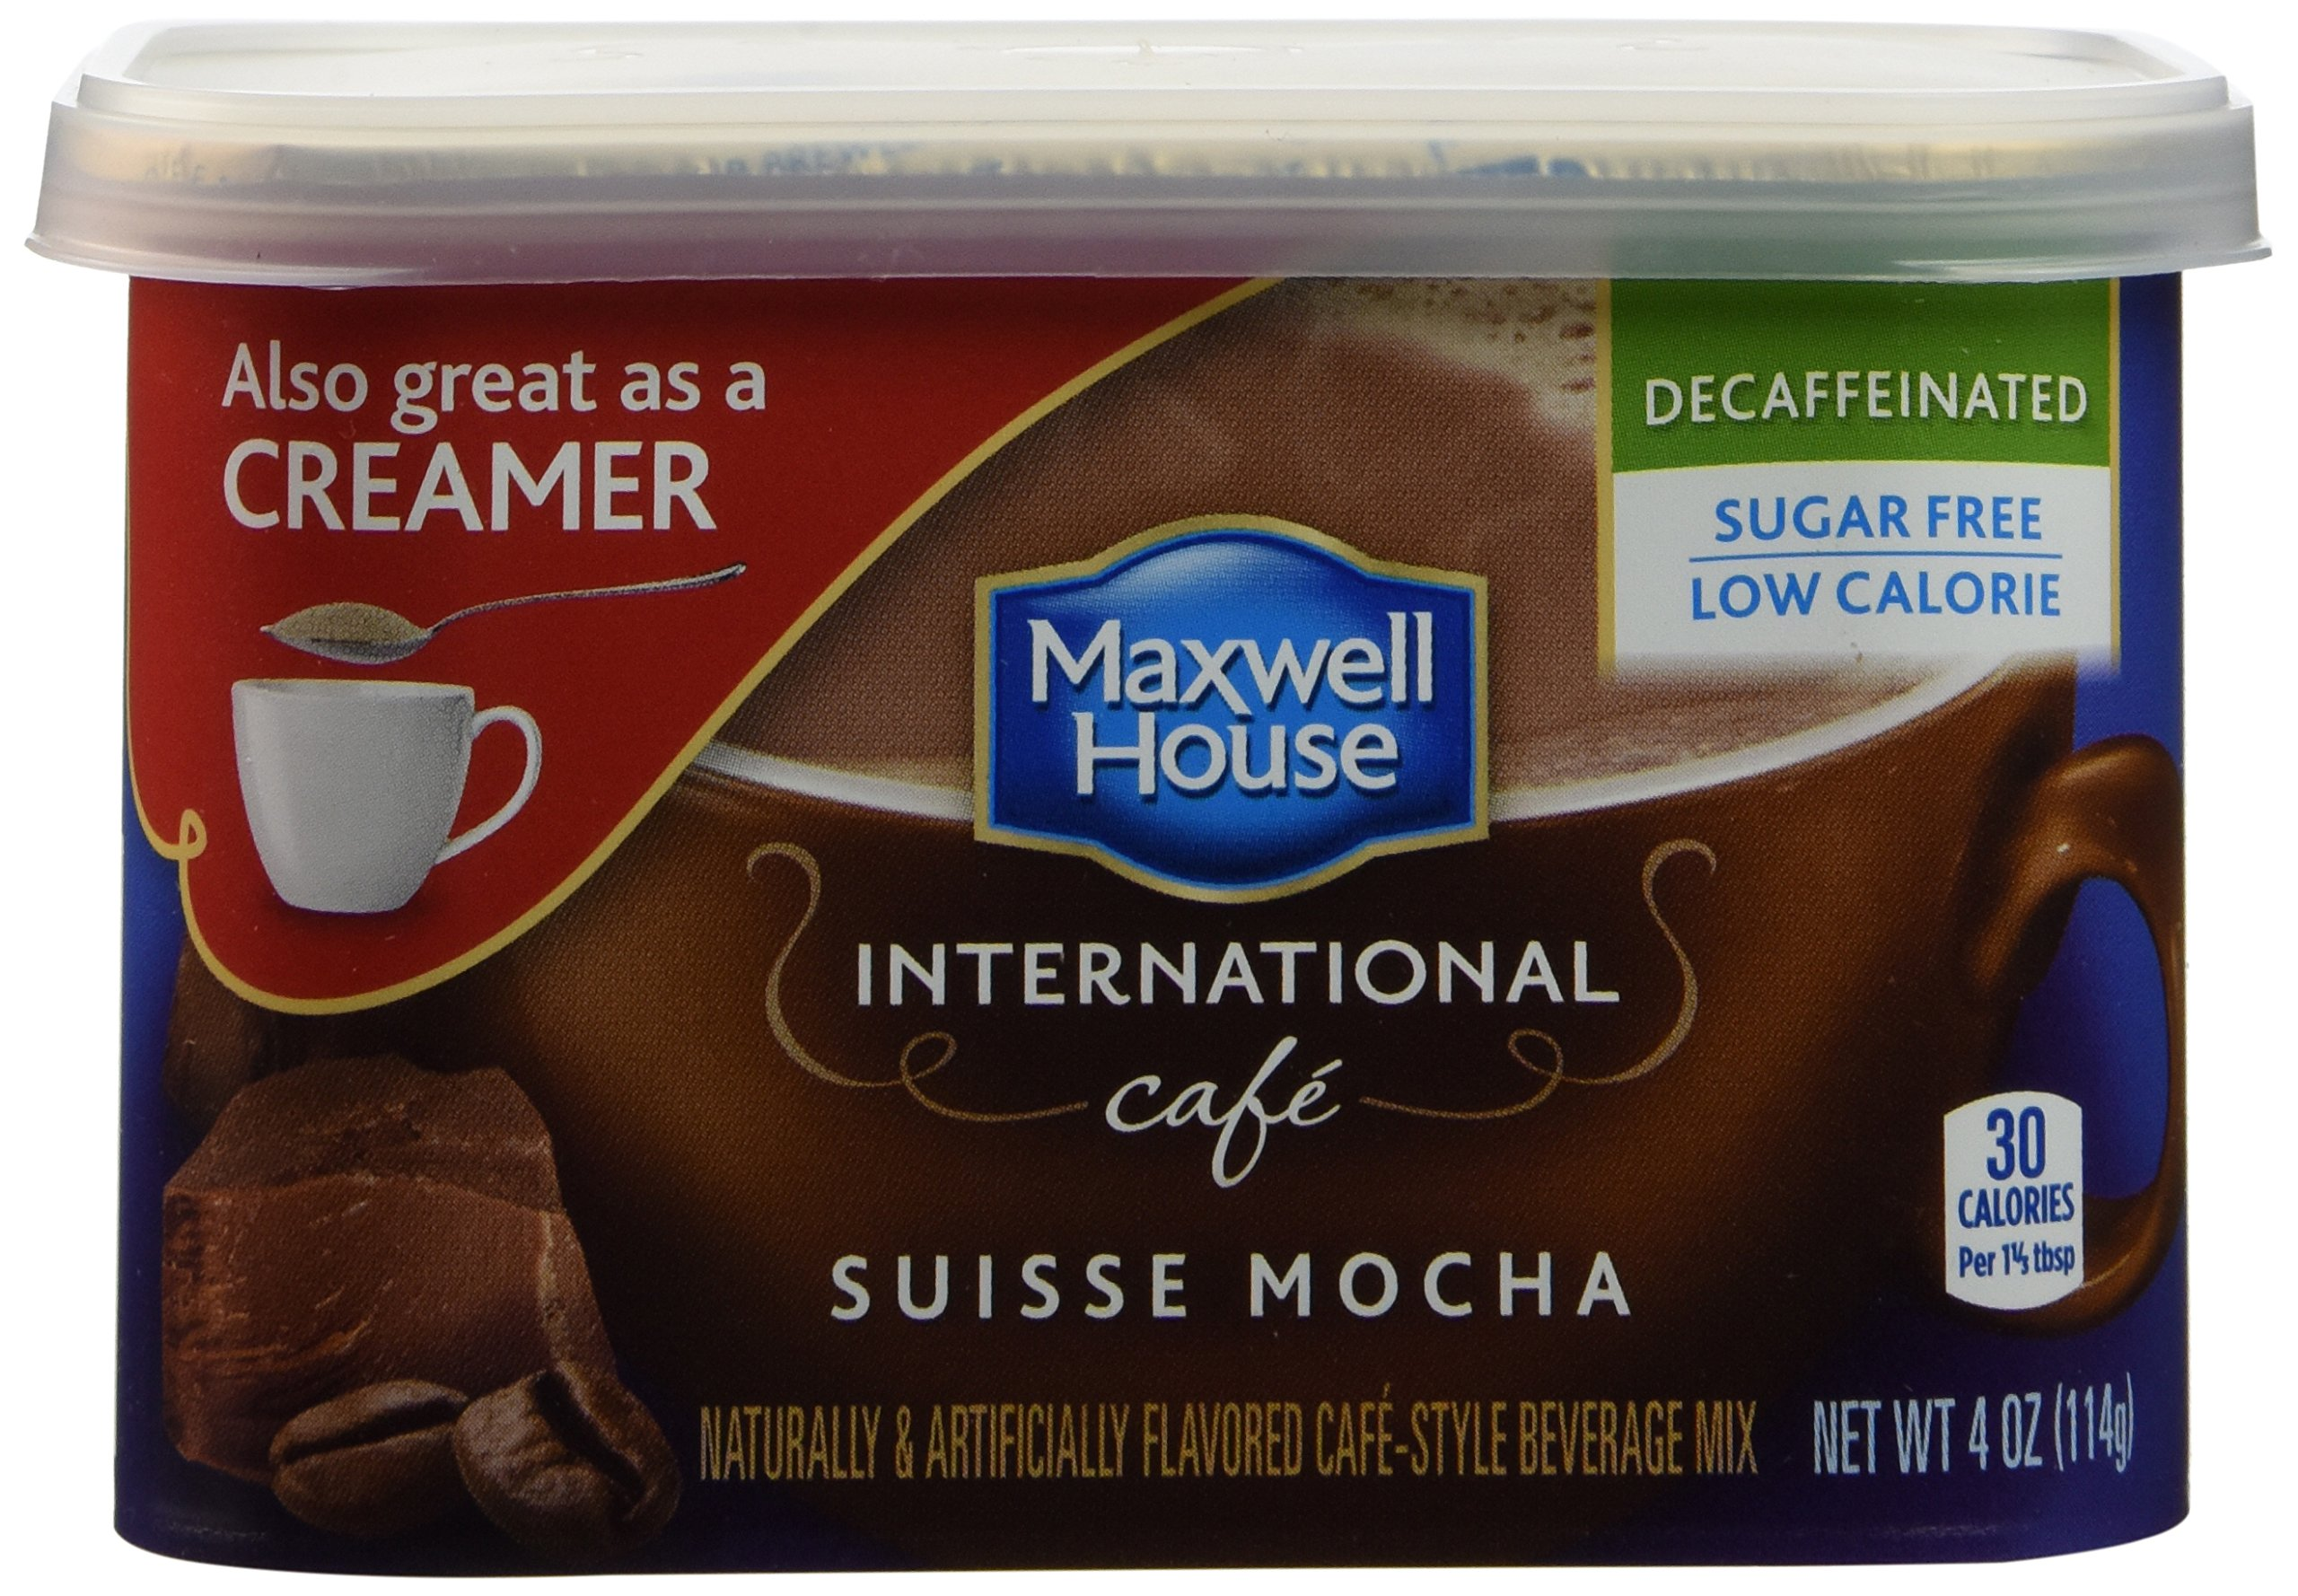 Maxwell House International Coffee Decaf Sugar Free Suisse Mocha Cafe, 4-Ounce Cans (Pack of 8)